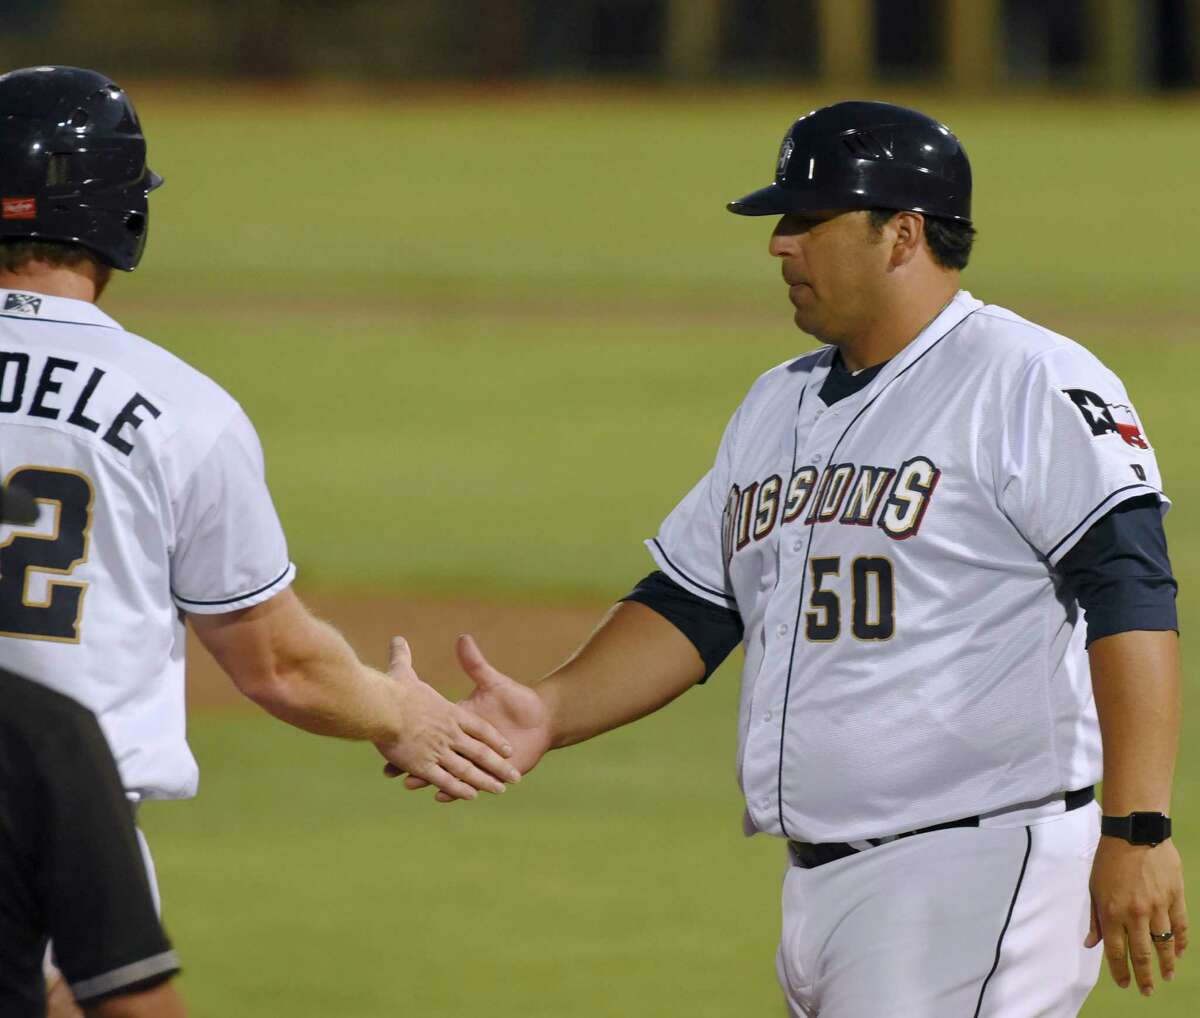 San Antonio Missions manager and third base coach Rod Barajas shakes hands with designated hitter Kyle Gaedele after Gaedele reached third base during Texas League action against Frisco at Wolff Stadium on Saturday, Aug. 1, 2015.